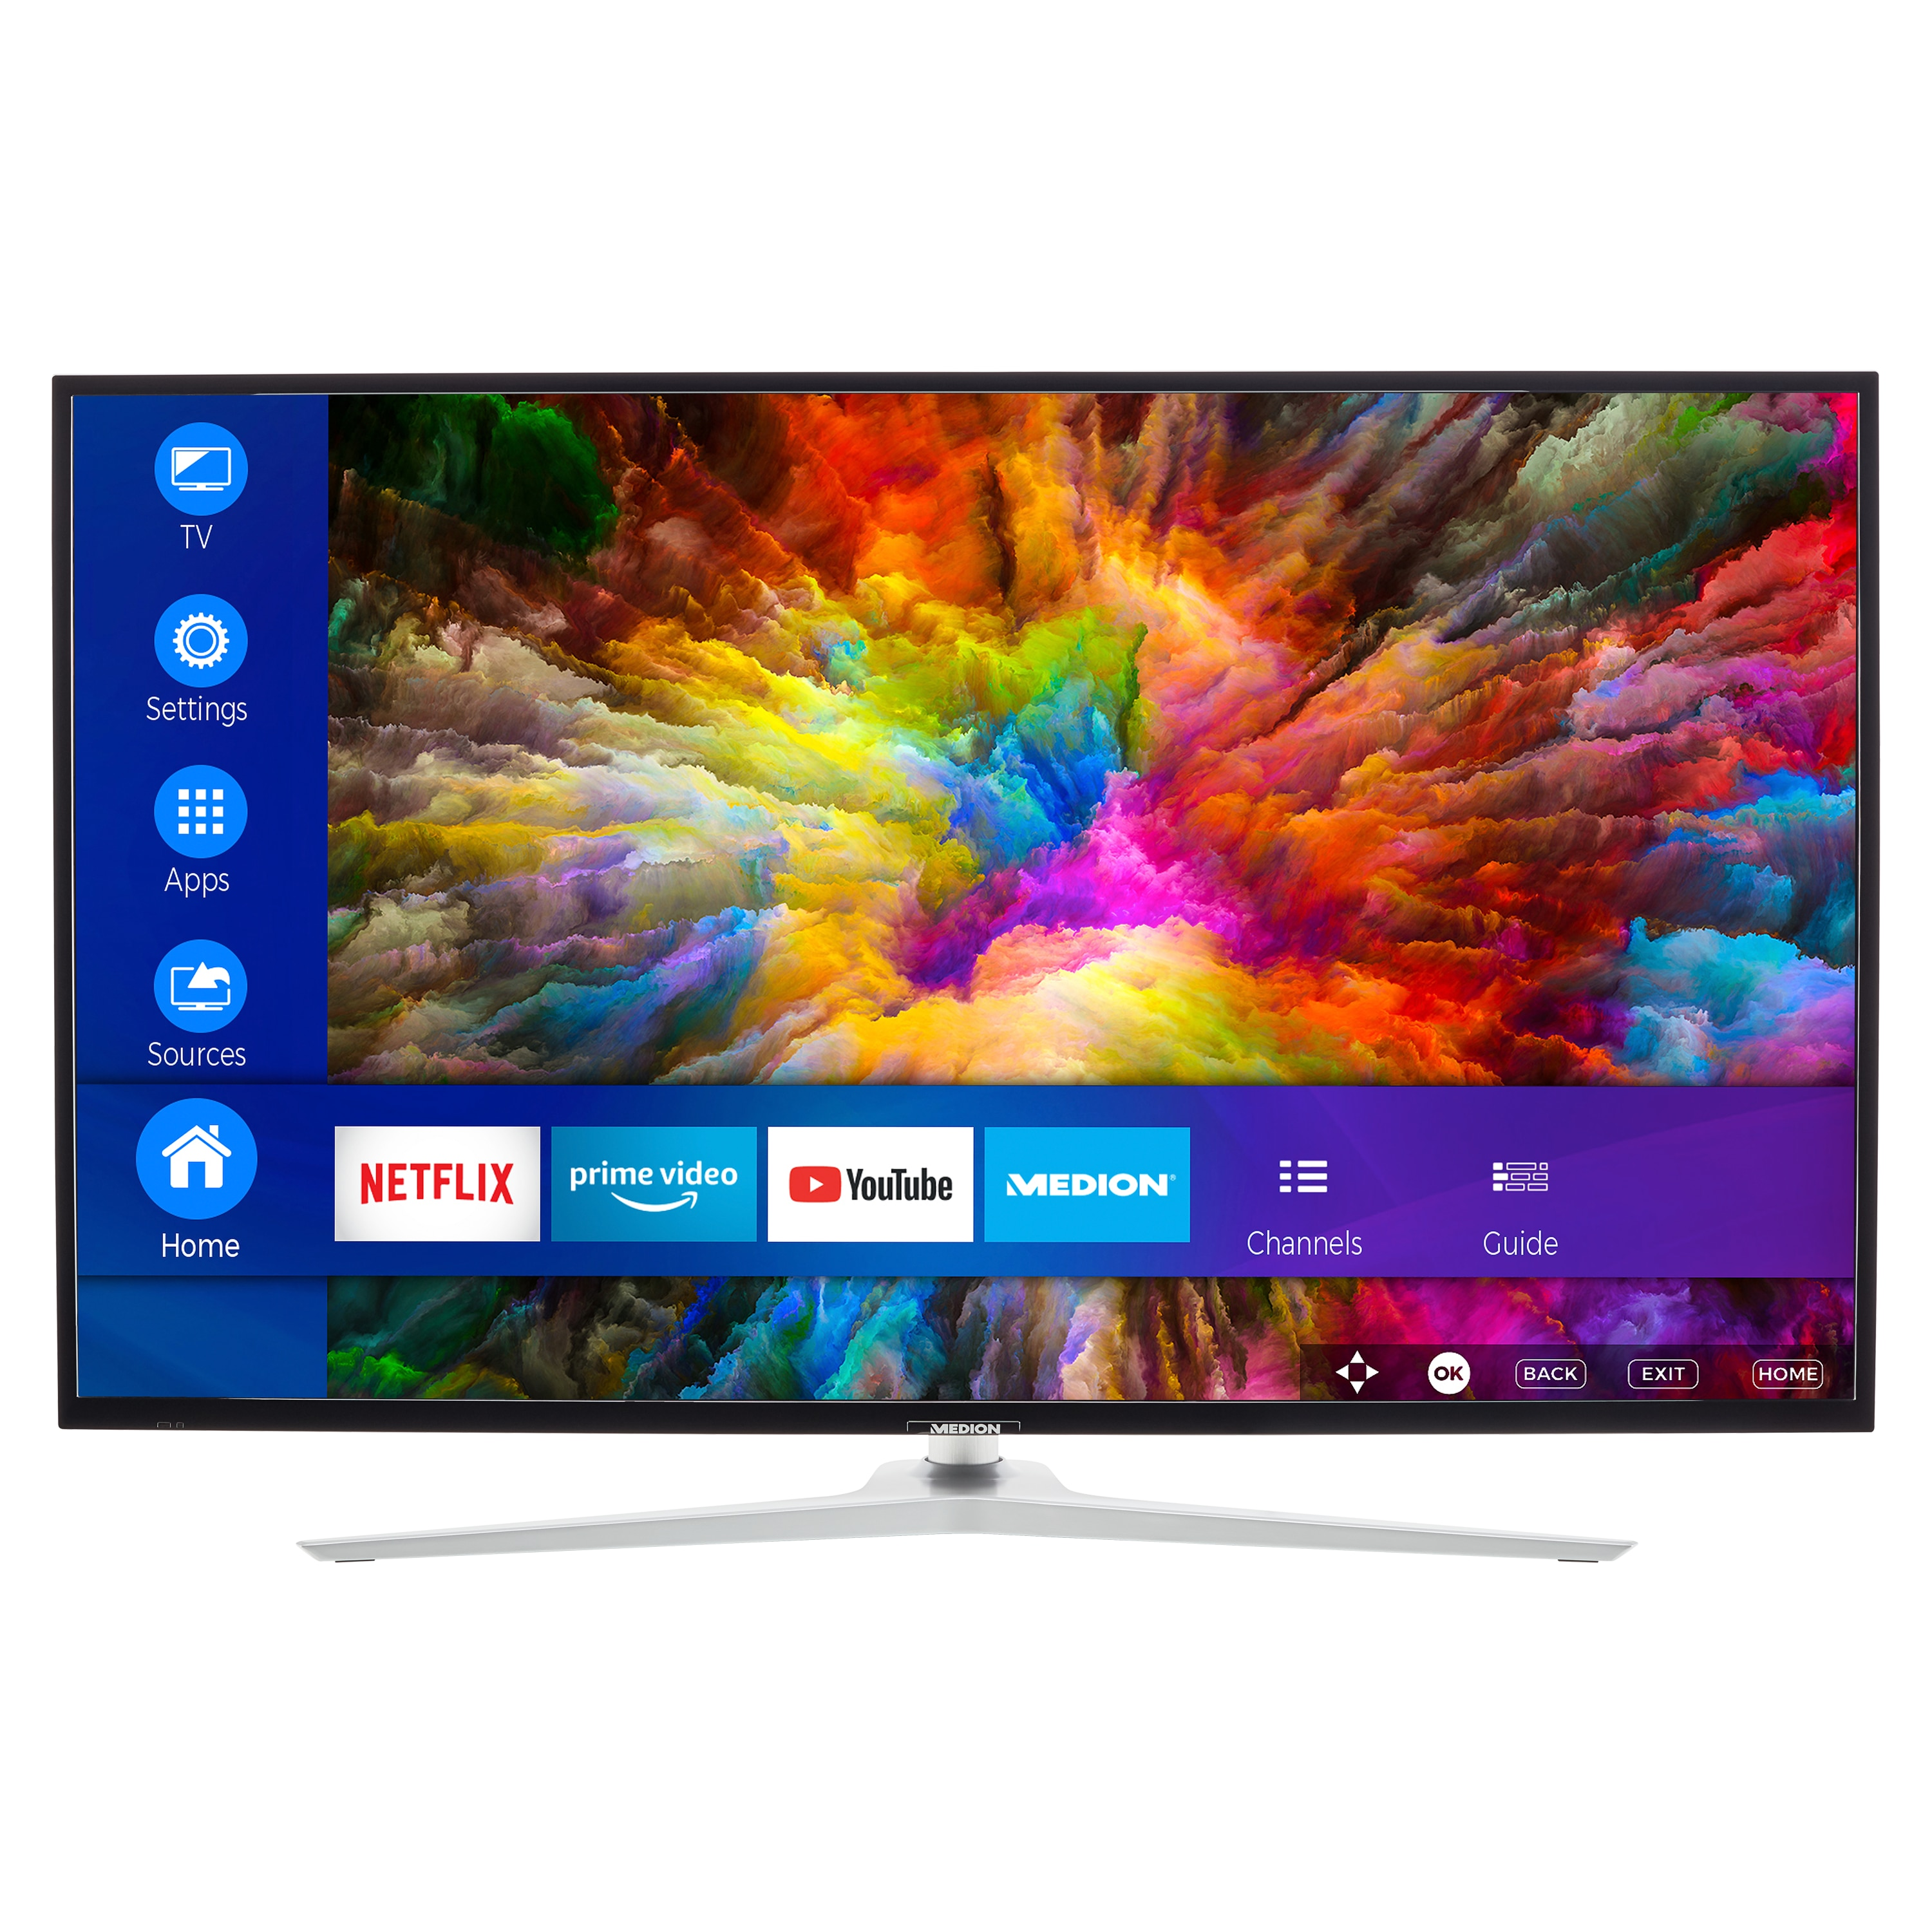 MEDION® LIFE® X15031 Smart-TV, 125,7 cm (50'') Ultra HD Display, HDR, Dolby Vision™, Micro Dimming, MEMC, PVR ready, Netflix, Amazon Prime Video, Bluetooth®, DTS HD, HD Triple Tuner, CI+